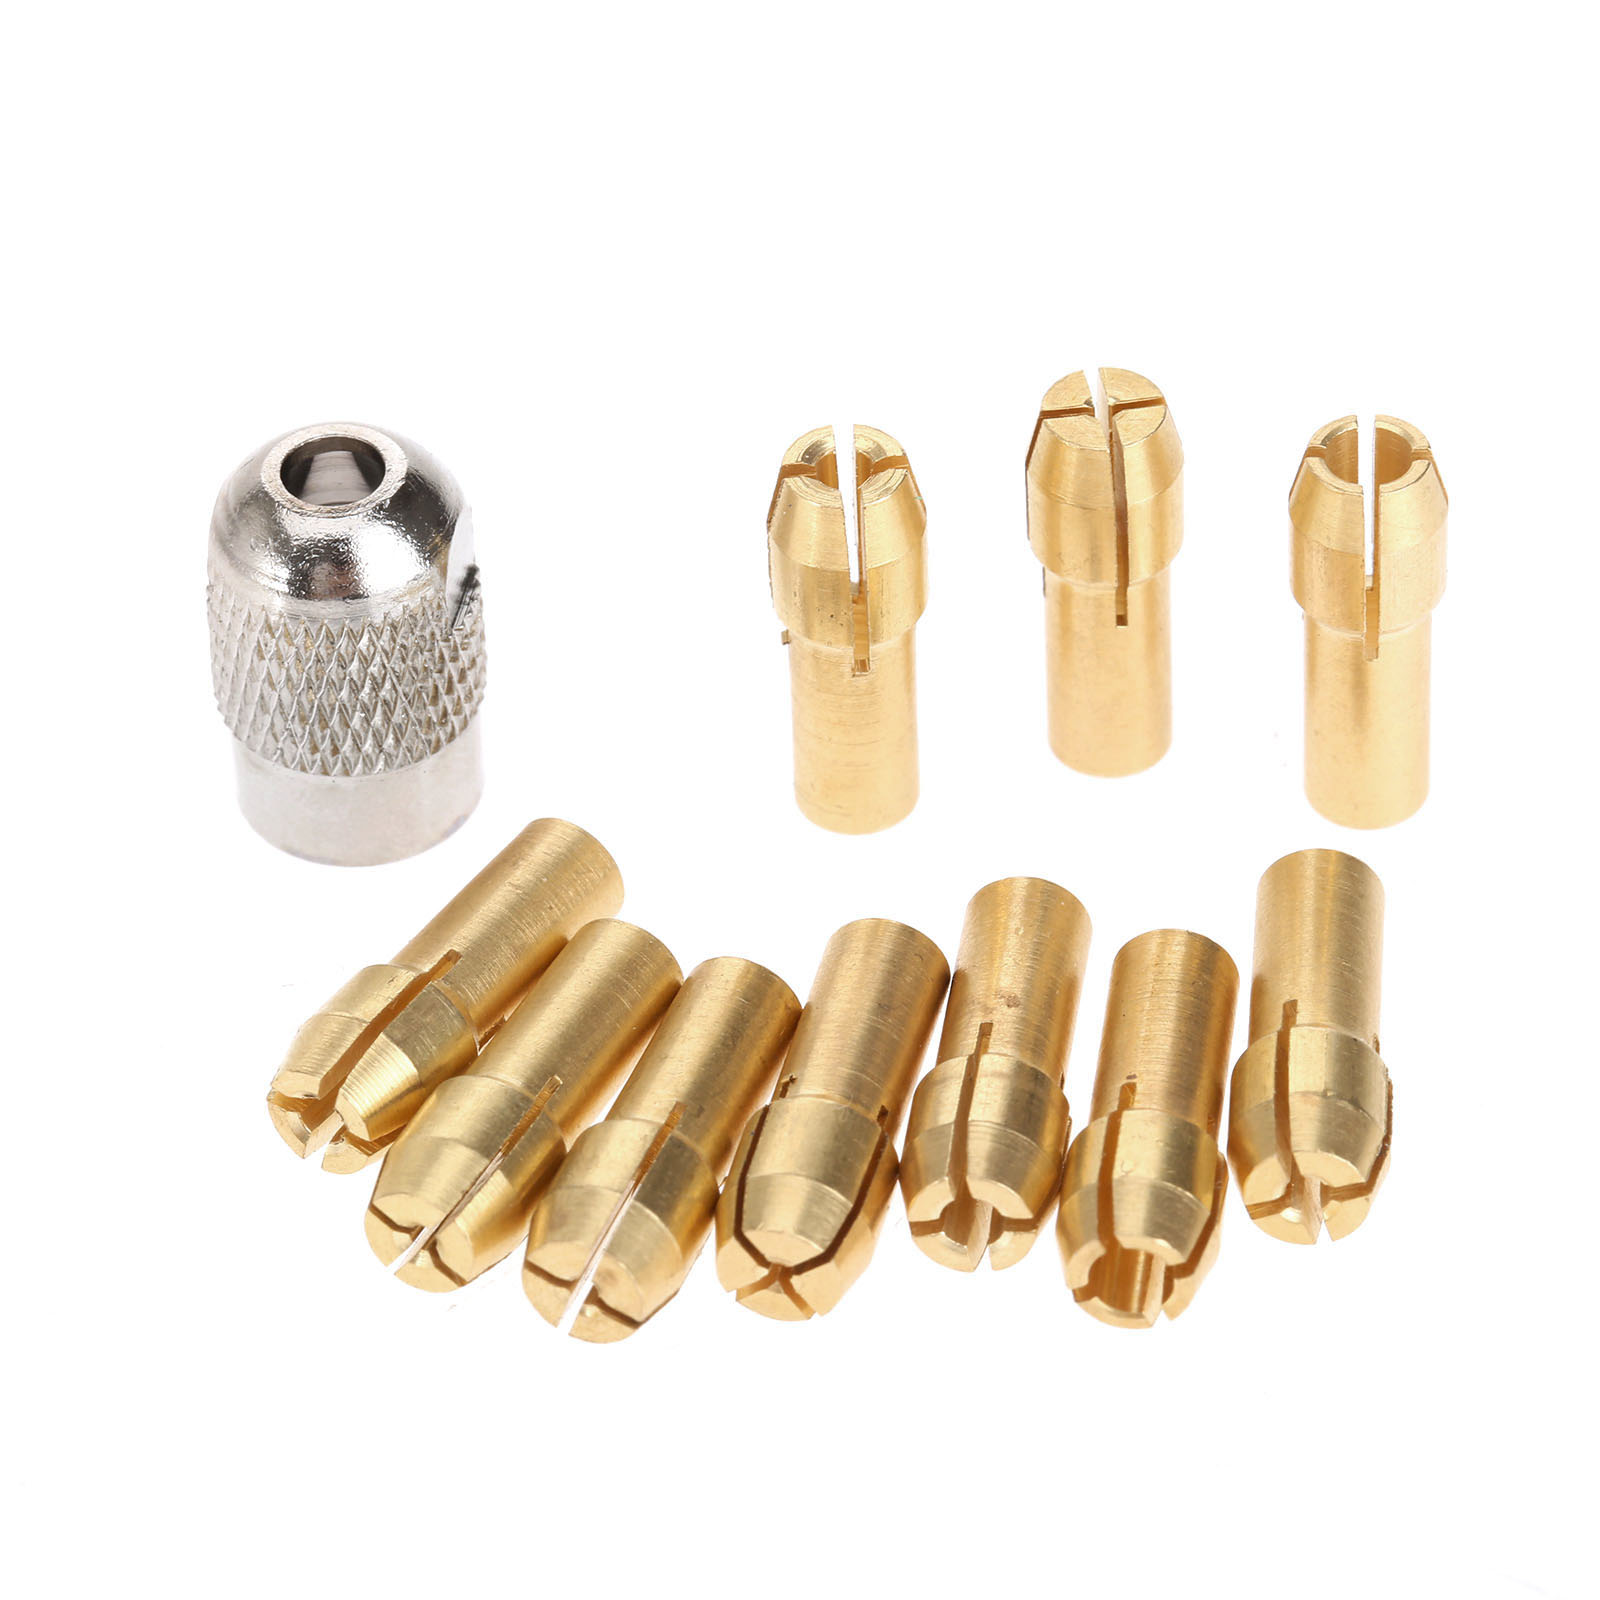 Dophee 10Pcs 0.5-3.2mm Brass Collet Mini Drill Chucks 4.8mm Dremel Rotary Tools+1Pc Mill Shaft Screw Cap Power Tool Accessories